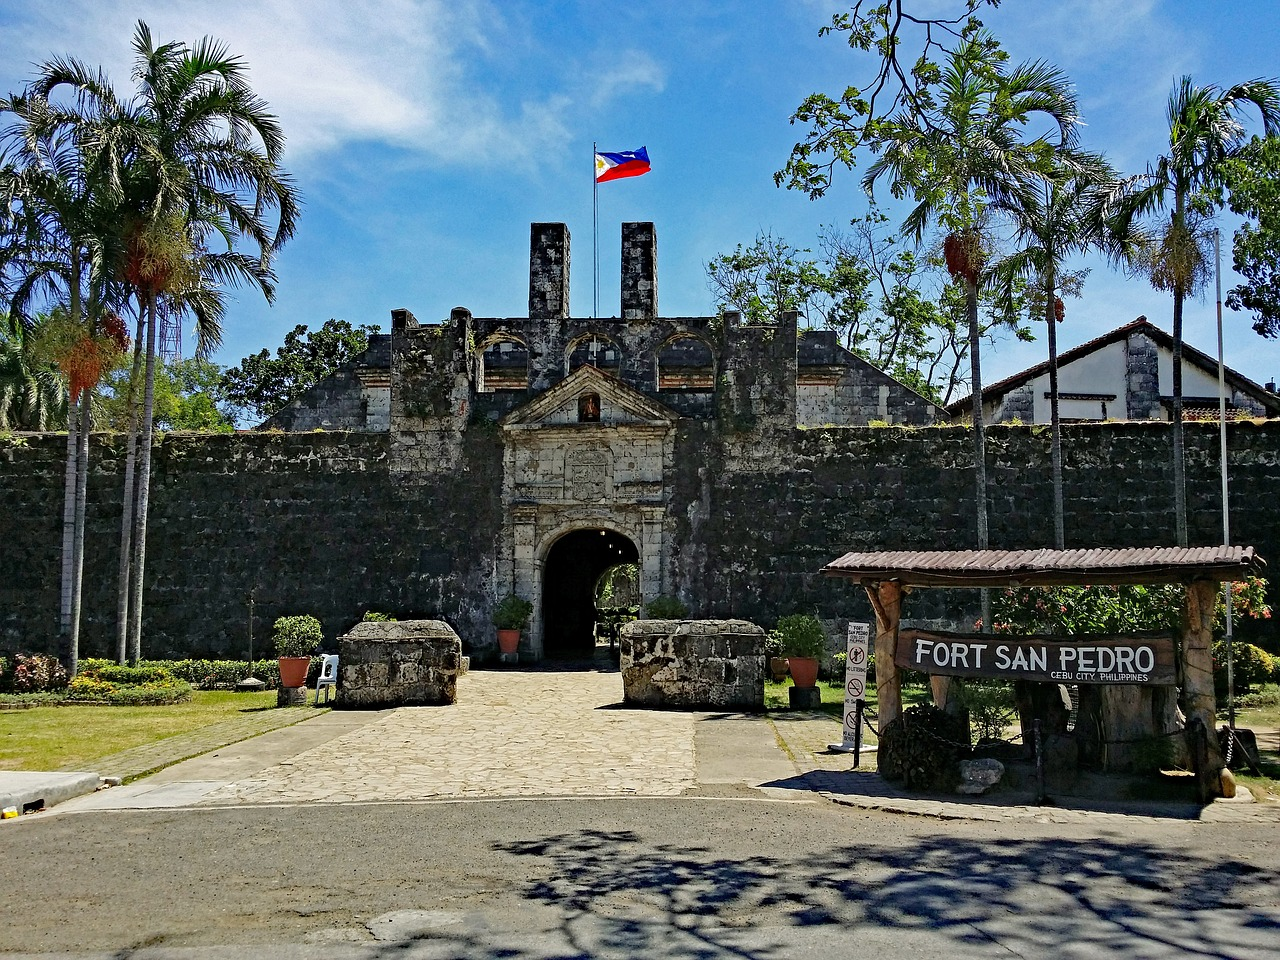 cebu philippines fort free photo